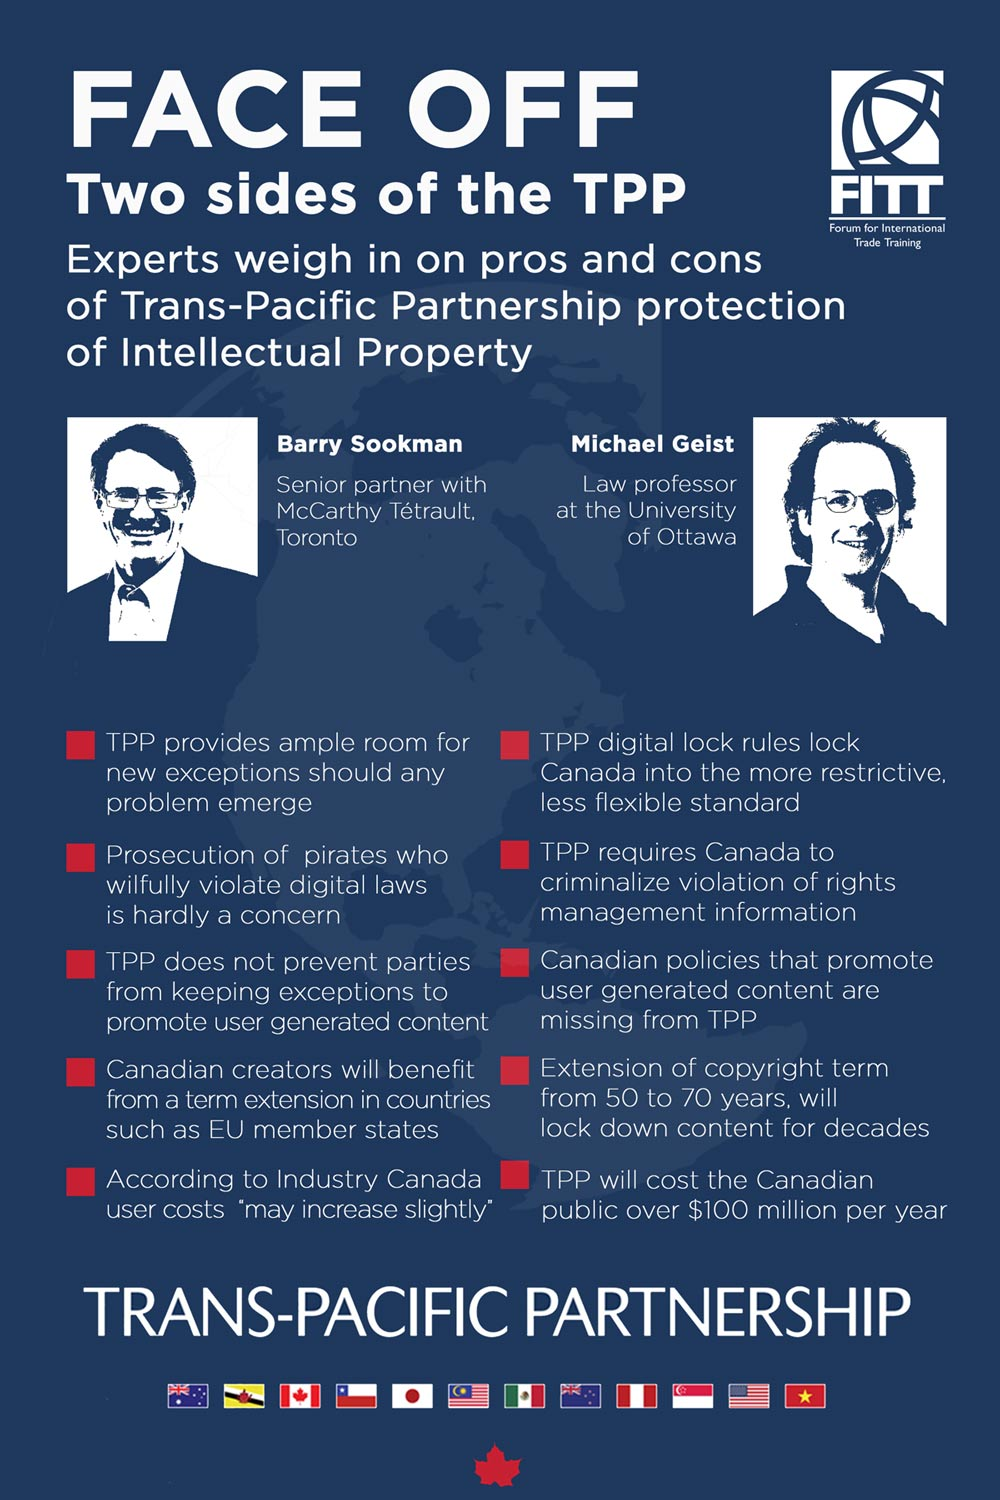 TPP intellectual property policies